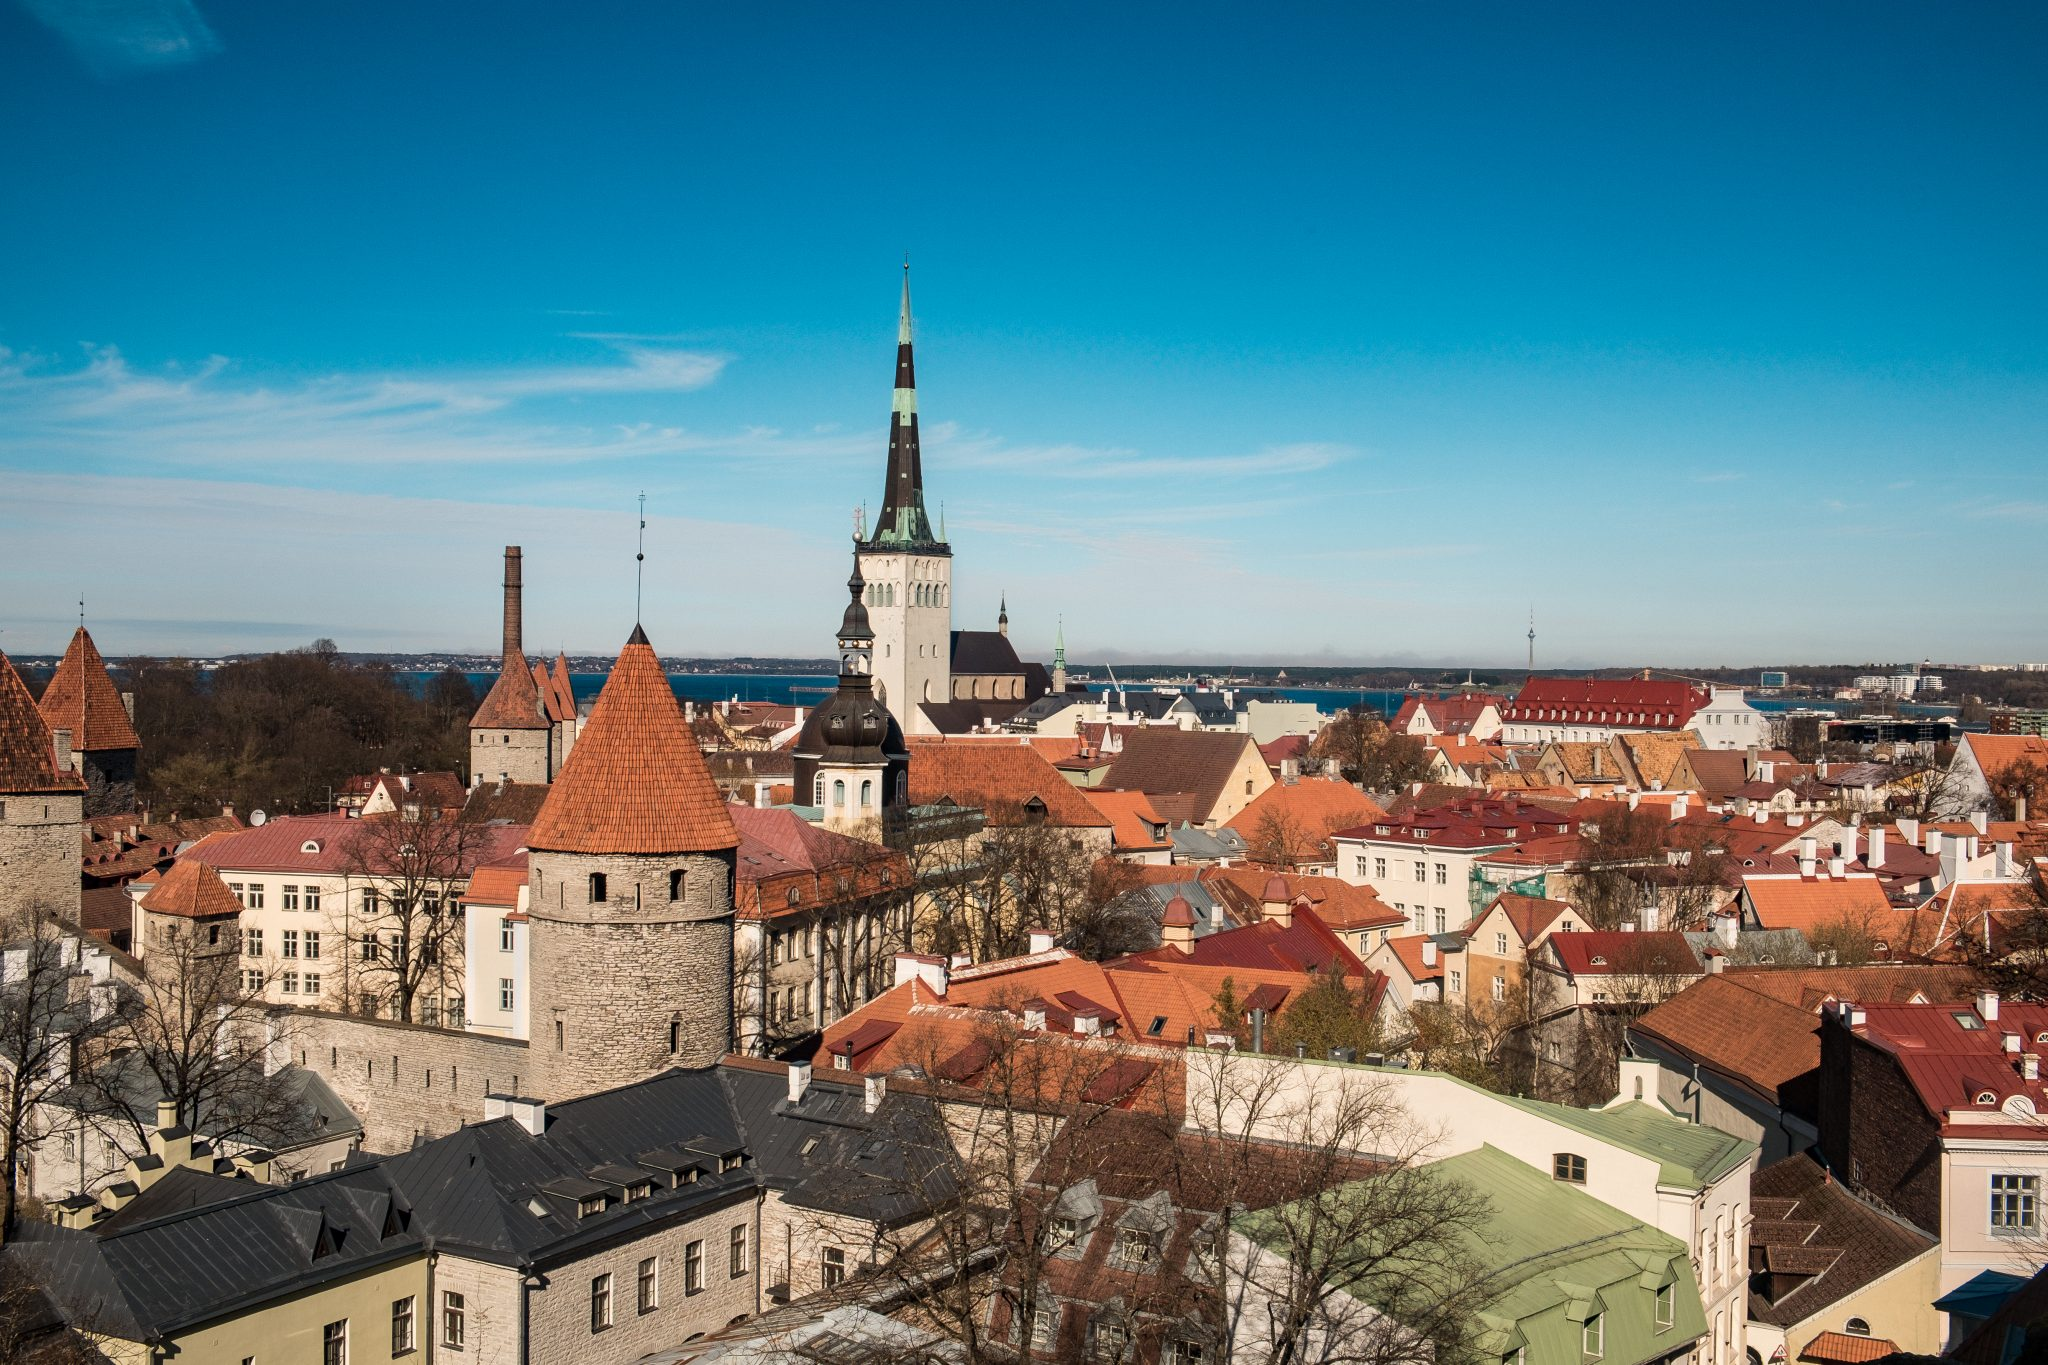 Panoramic view of tallinn with old houses and medieval tower photo by Jo Kassis